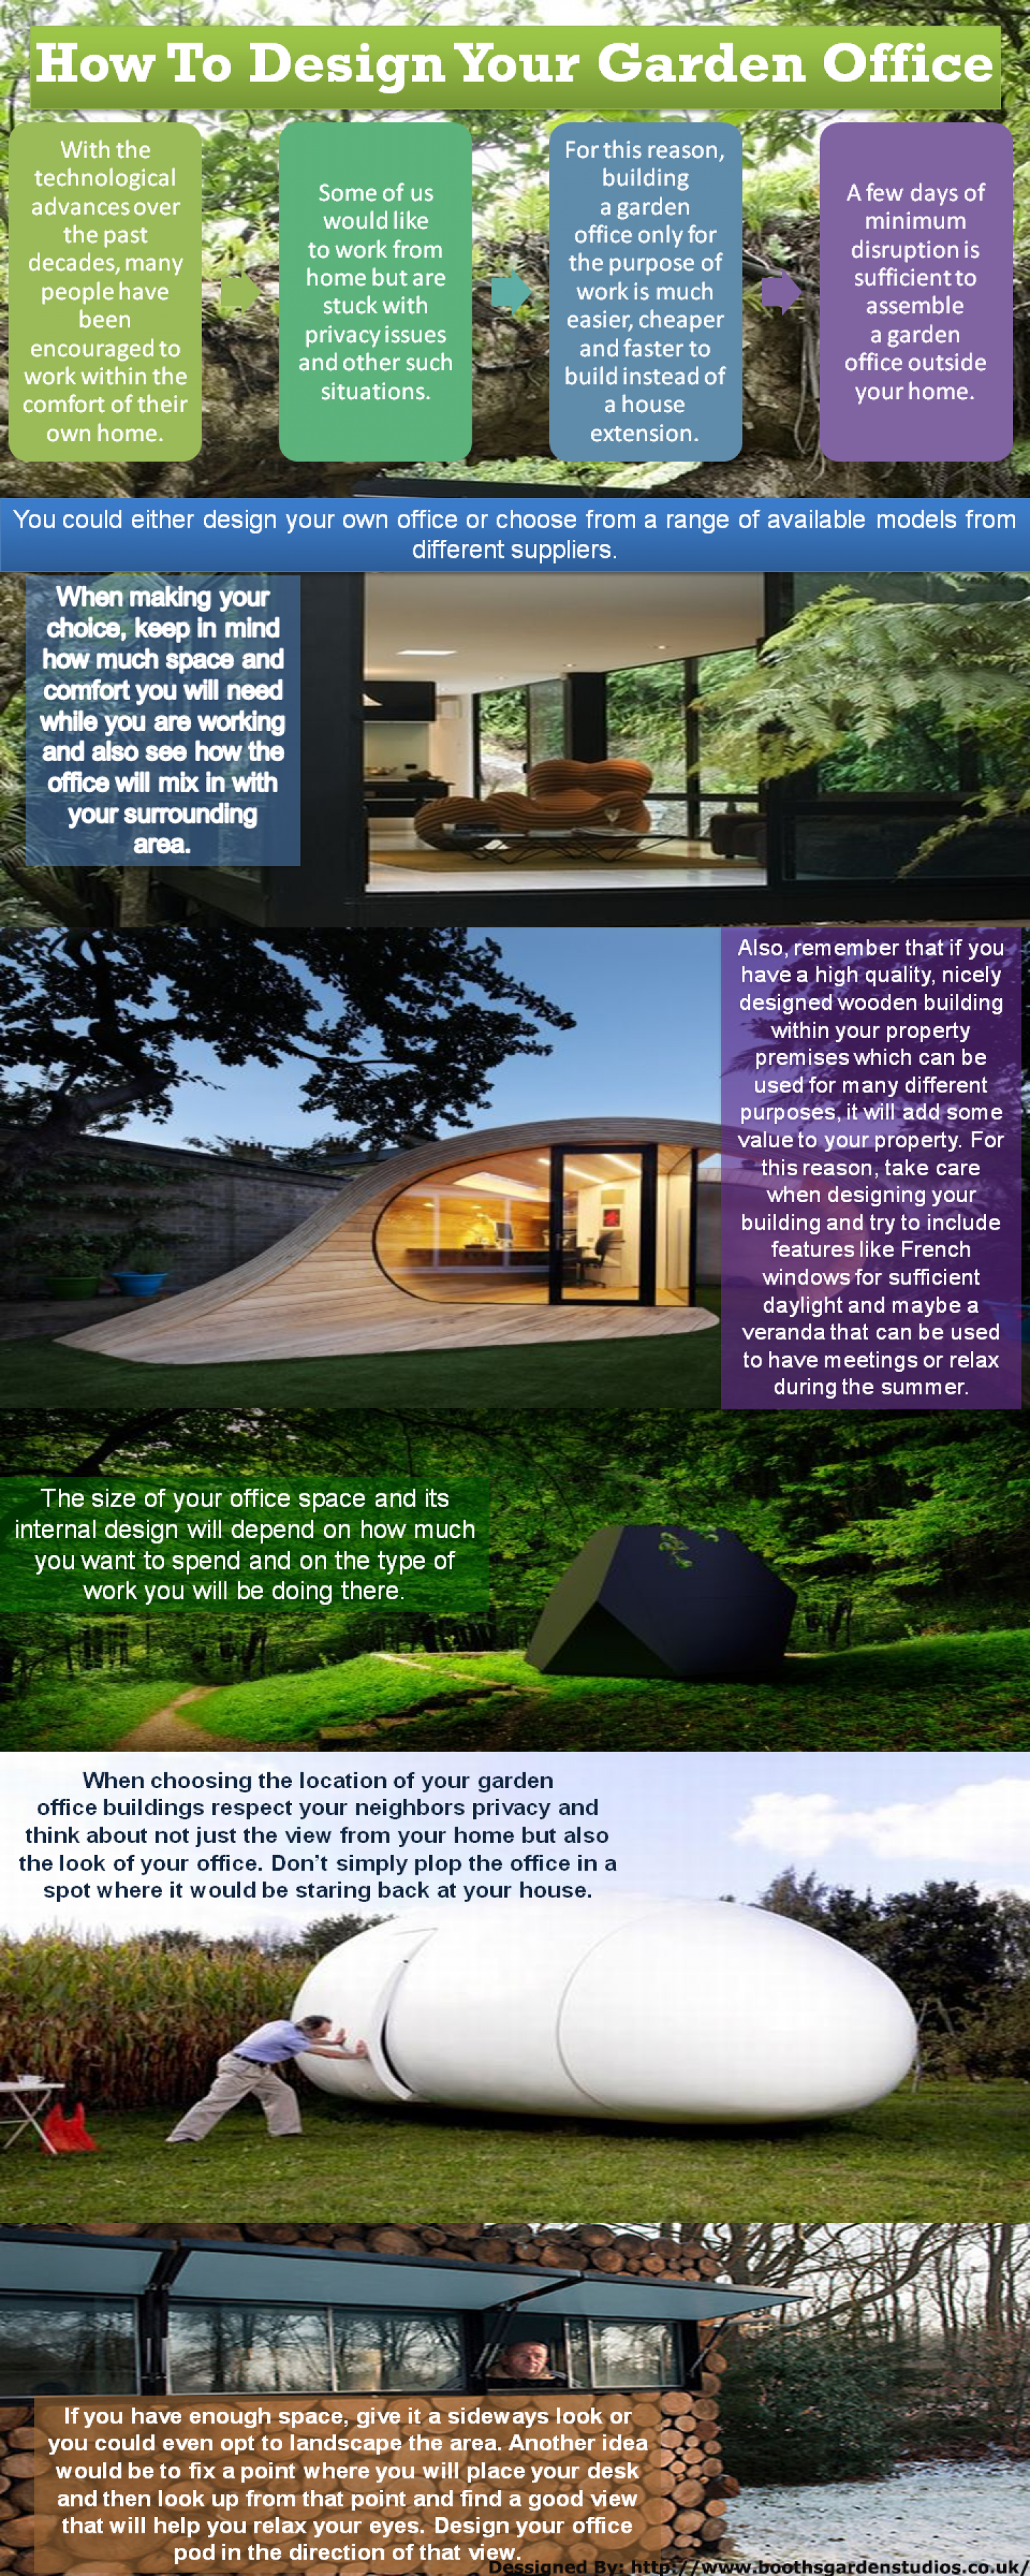 How to Design Your Garden Office Infographic